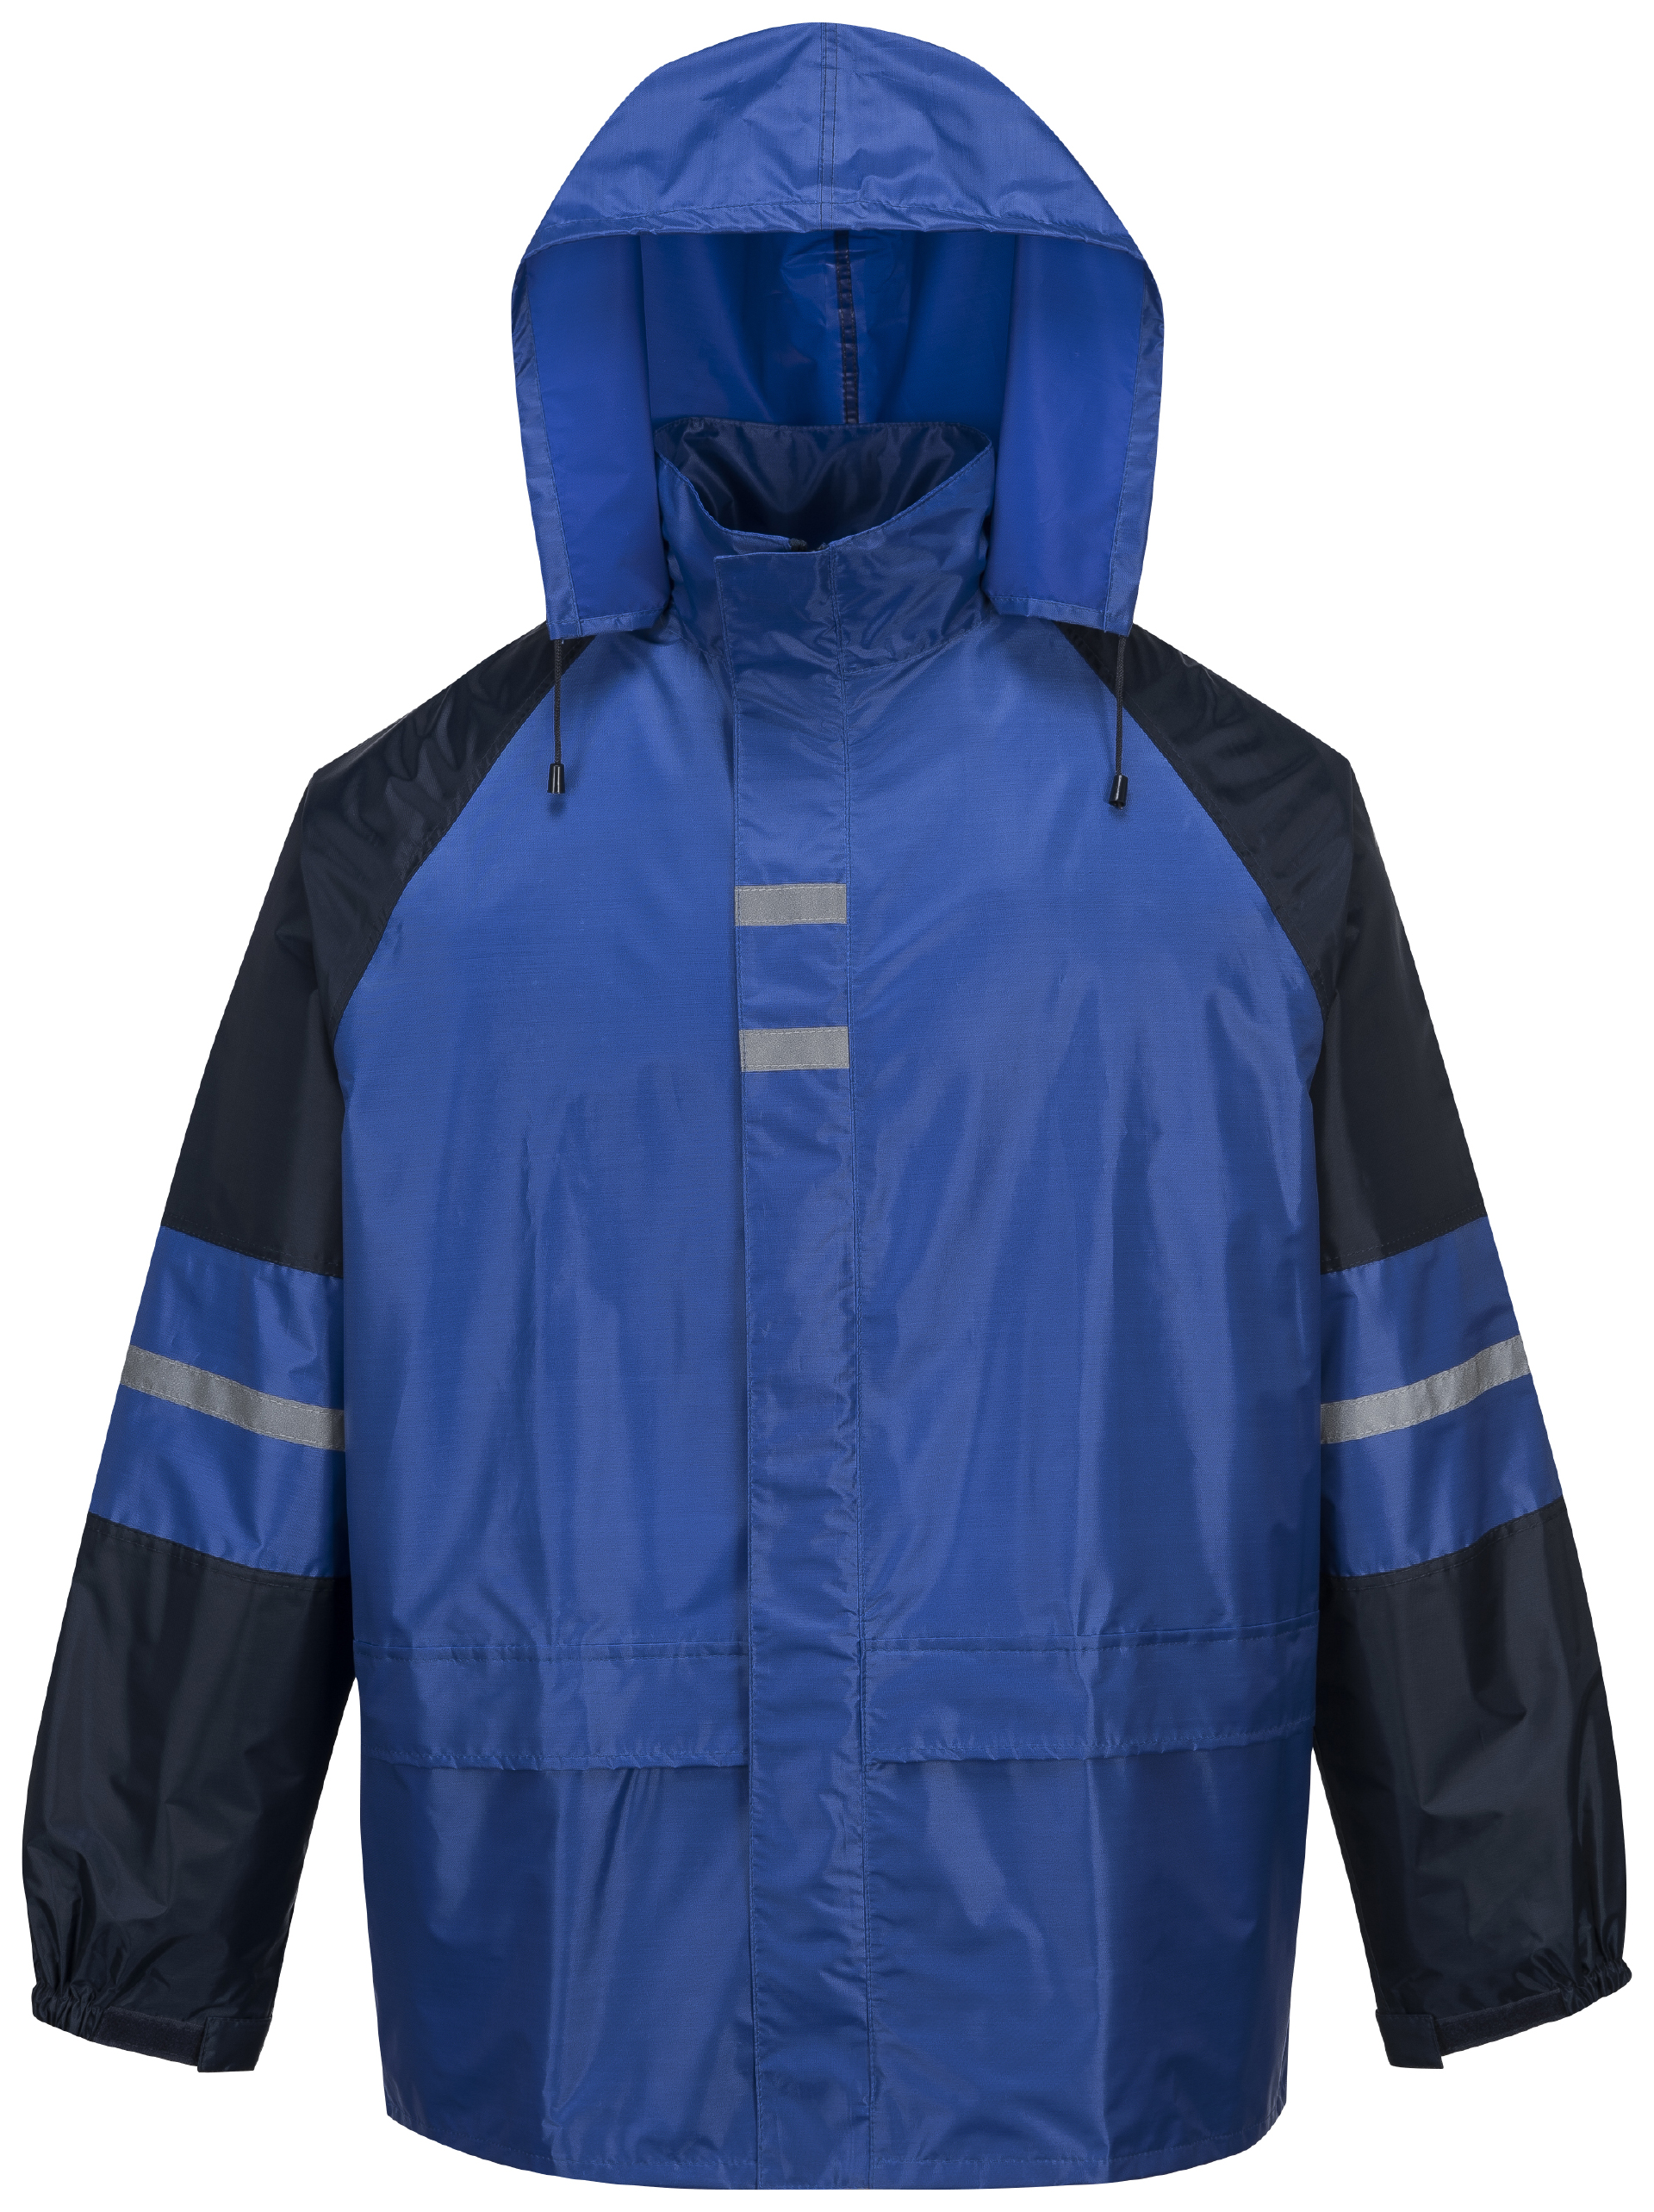 polyester/pvc/pu coating raincoat